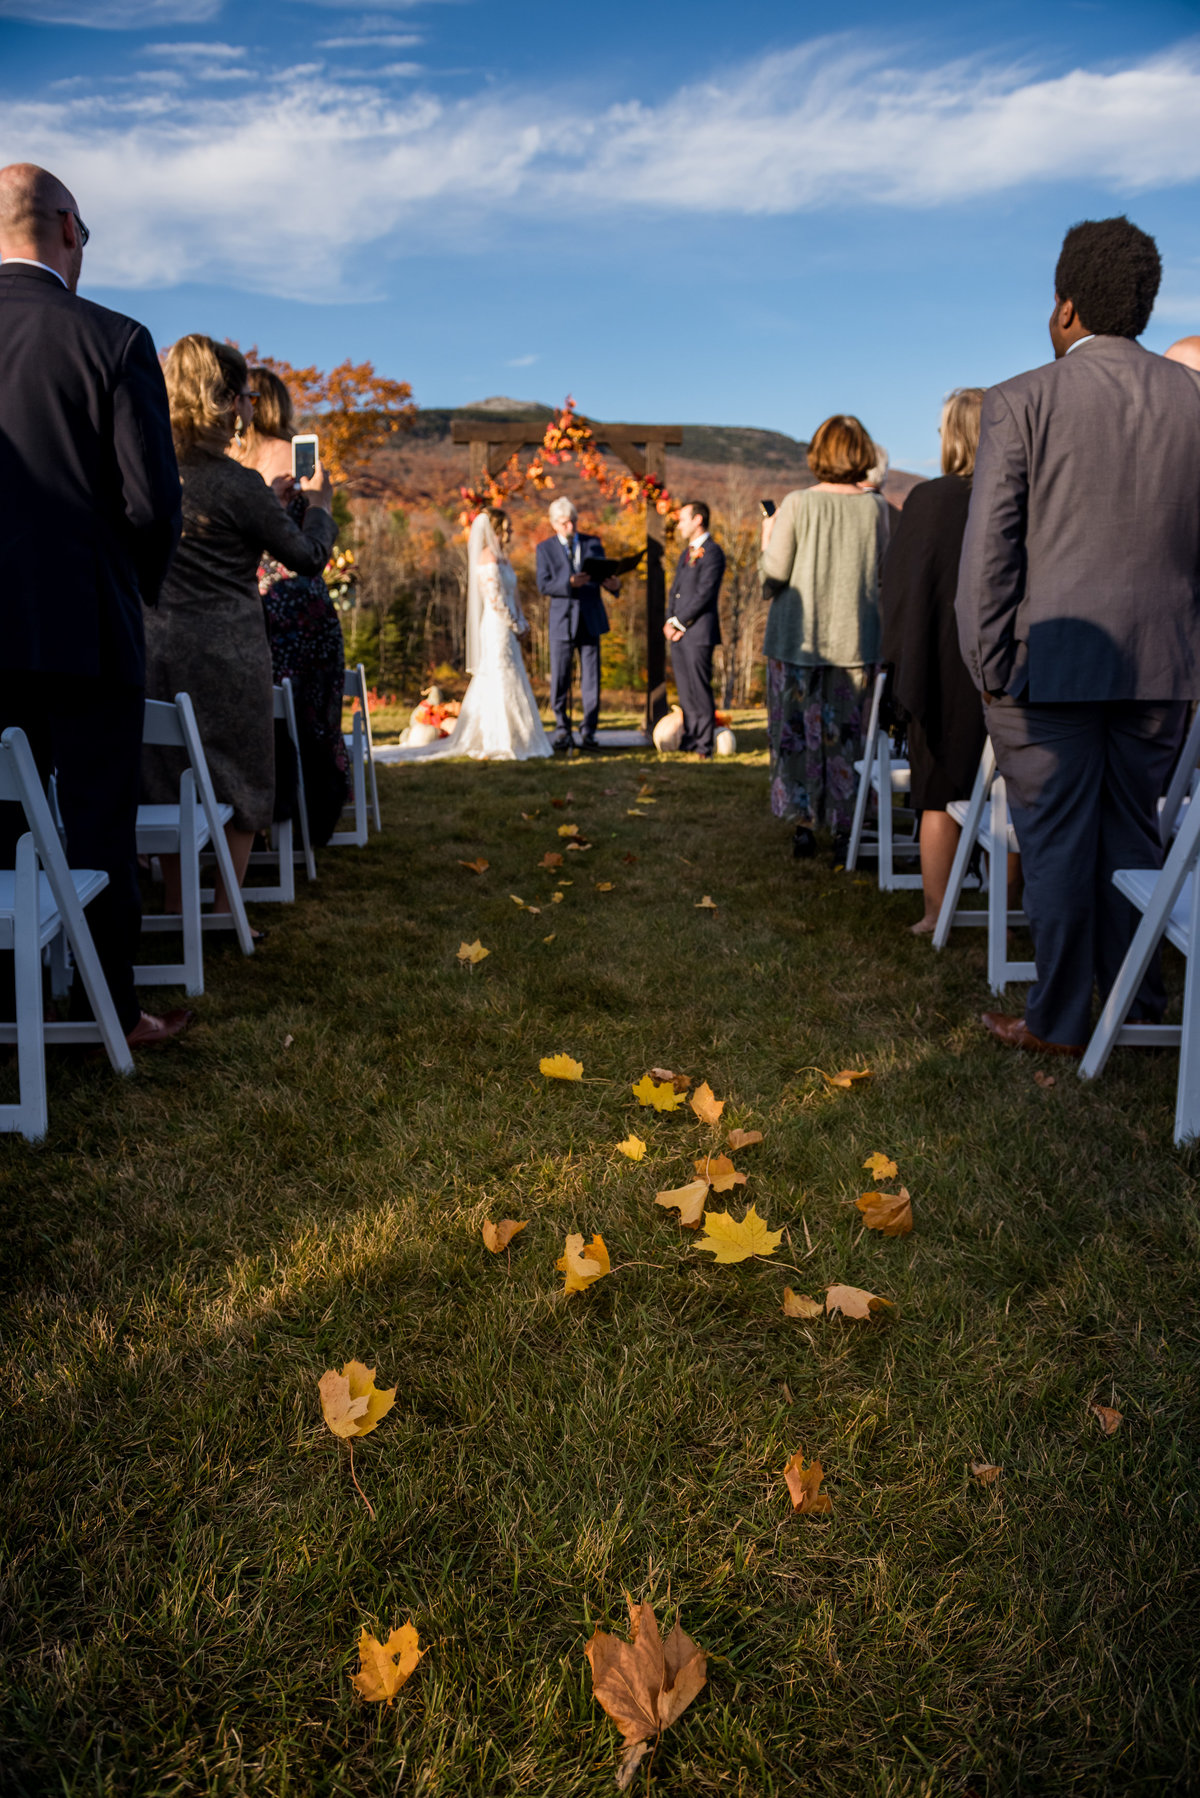 leaves on the ground during fall wedding in outdoor venue NH